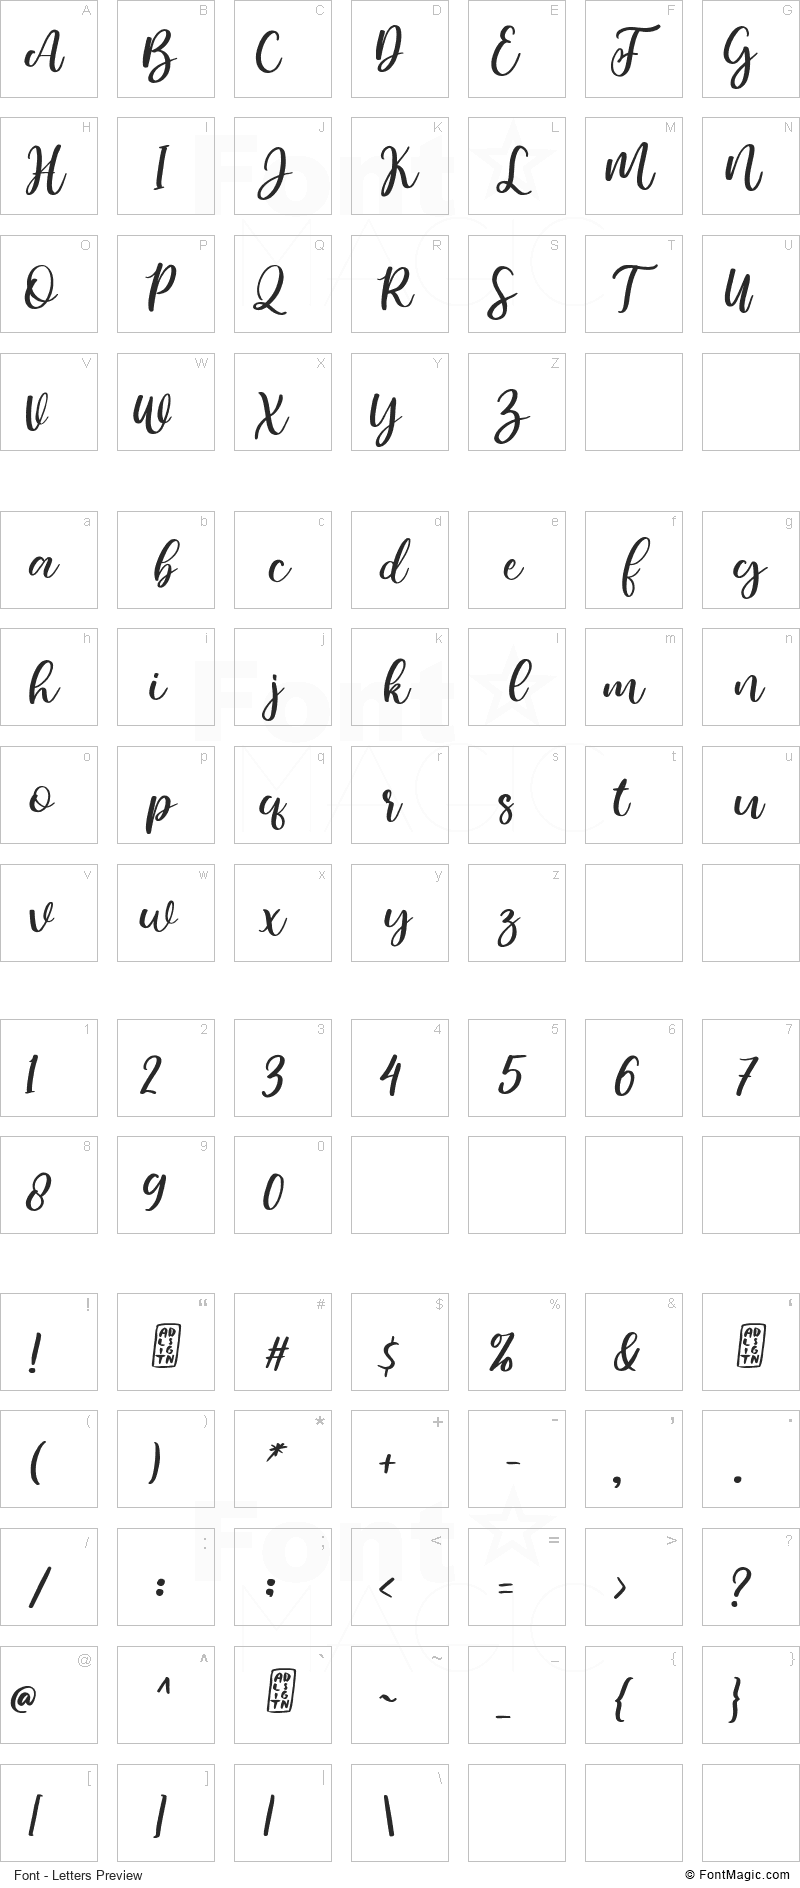 Bemalla Font - All Latters Preview Chart